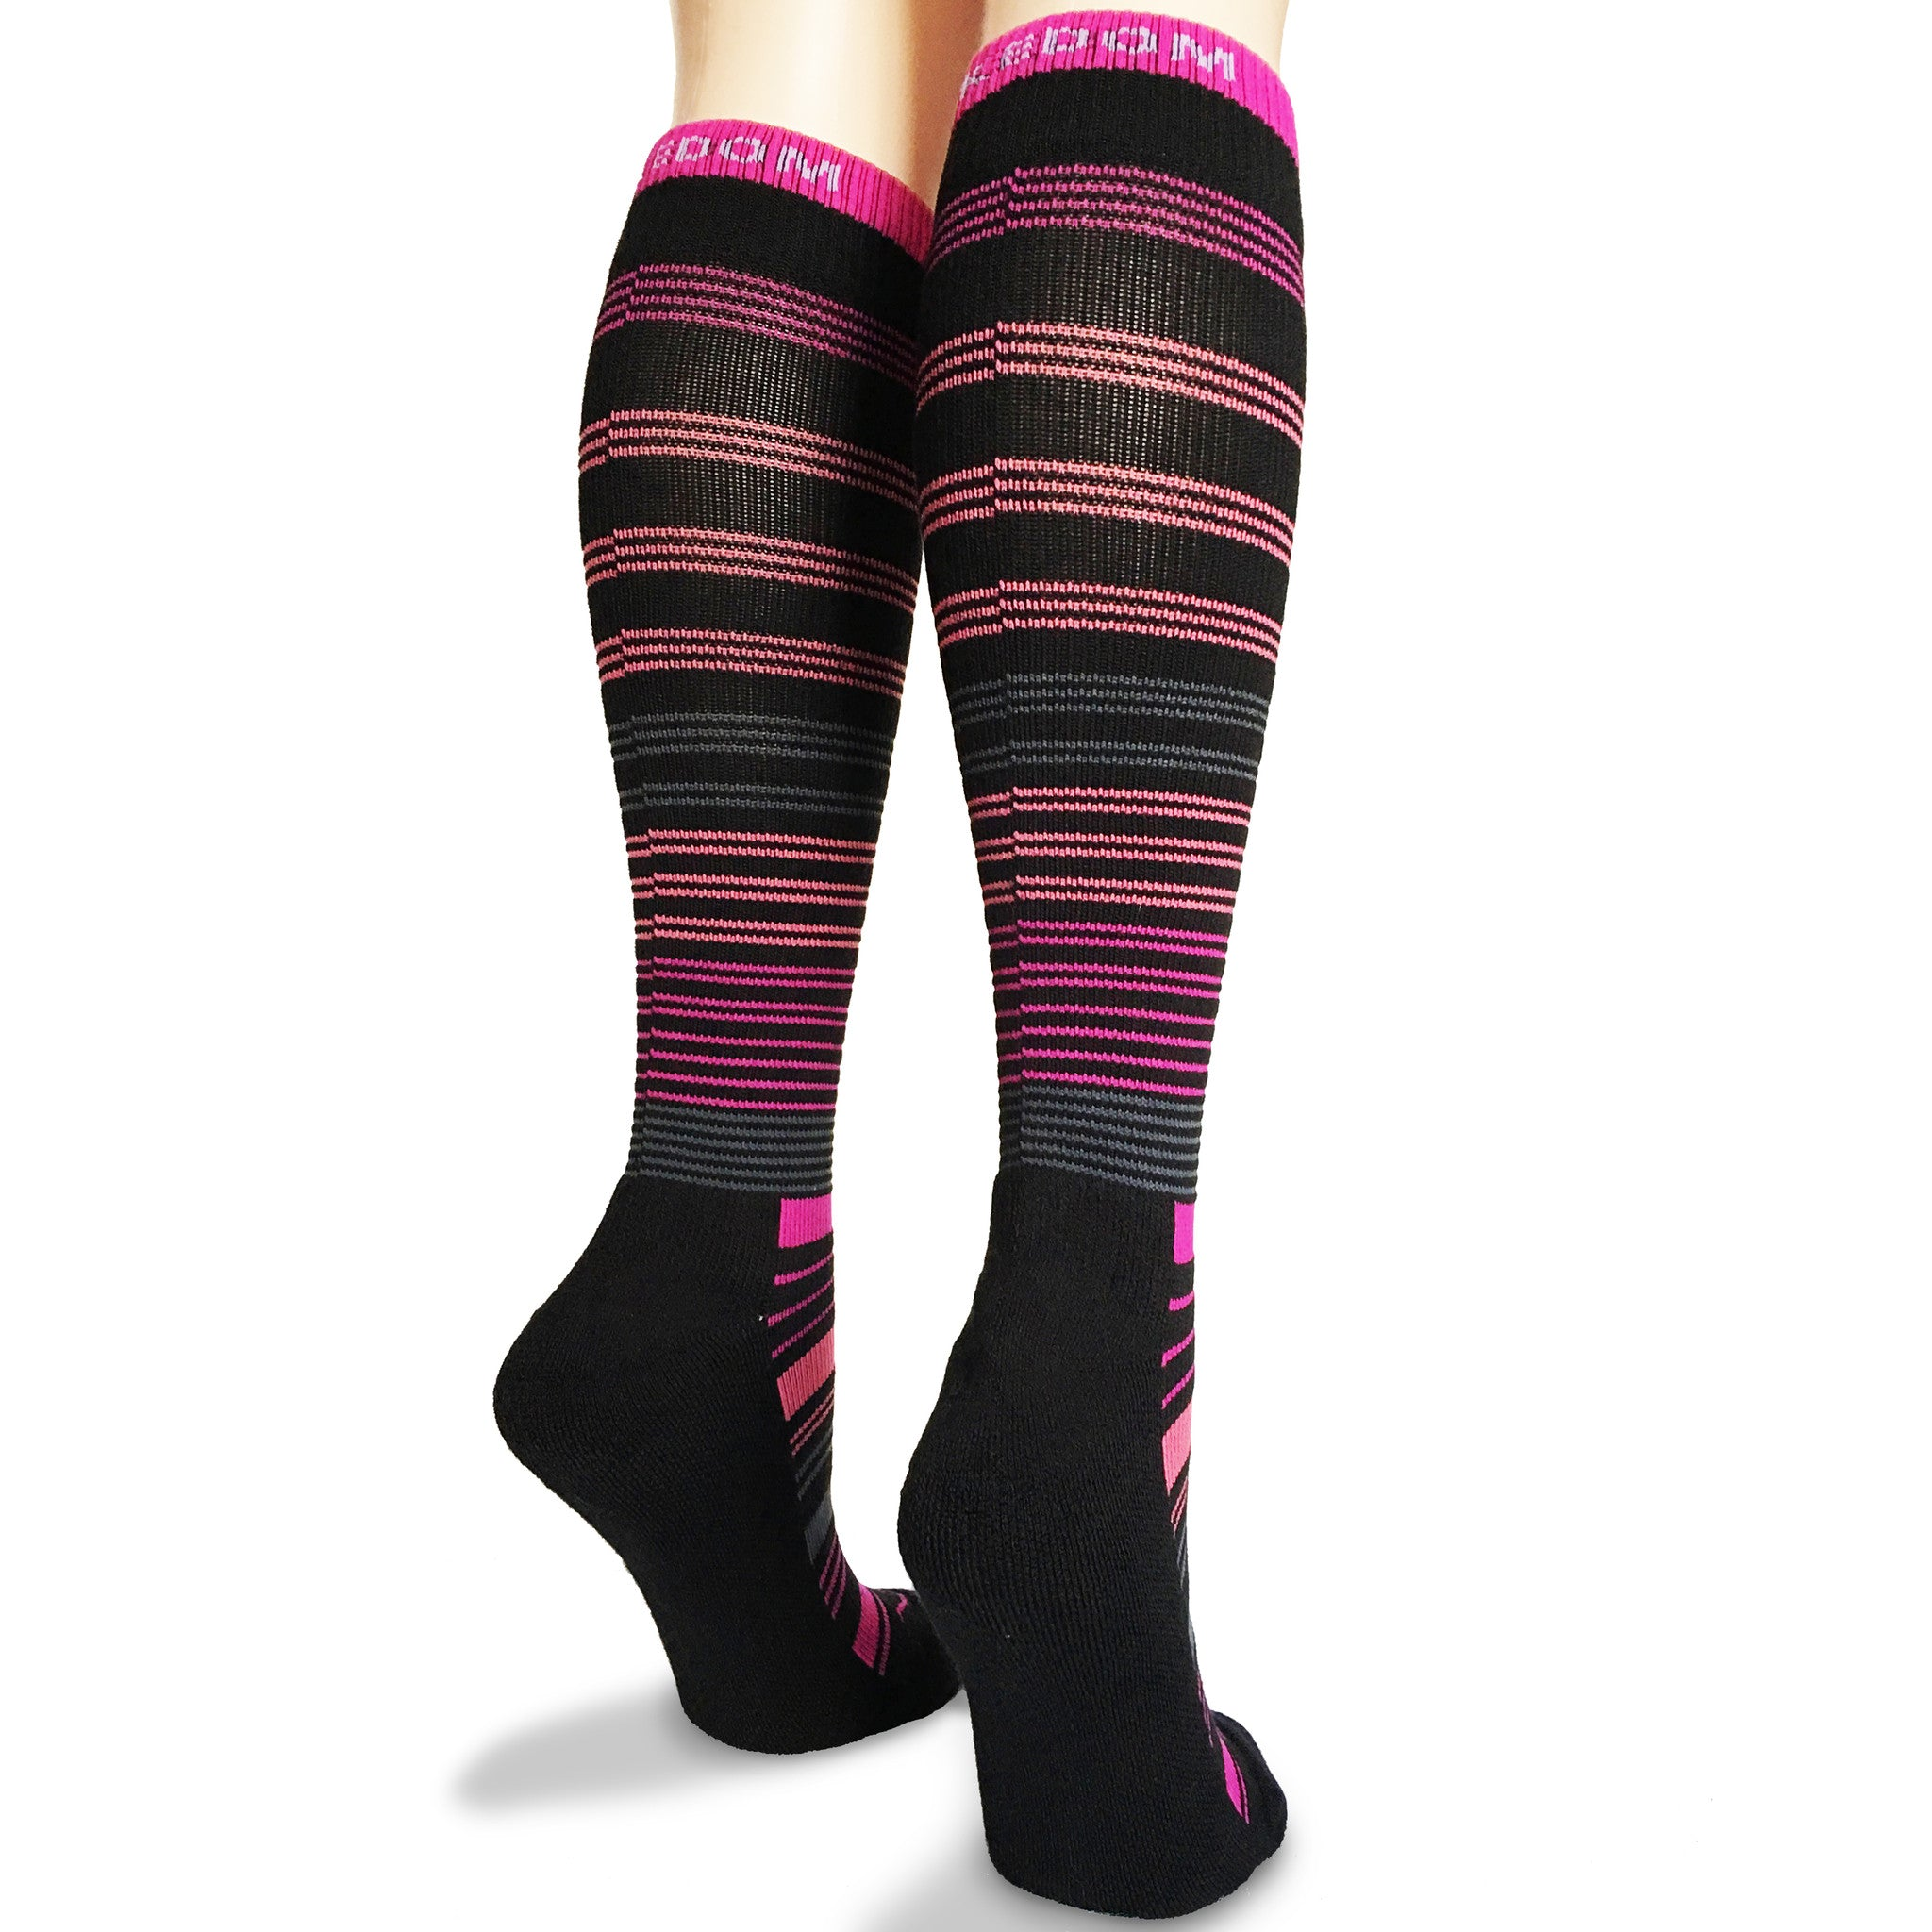 Circular 20 - 30 mmhg Merino Wool Graduated Compression Socks